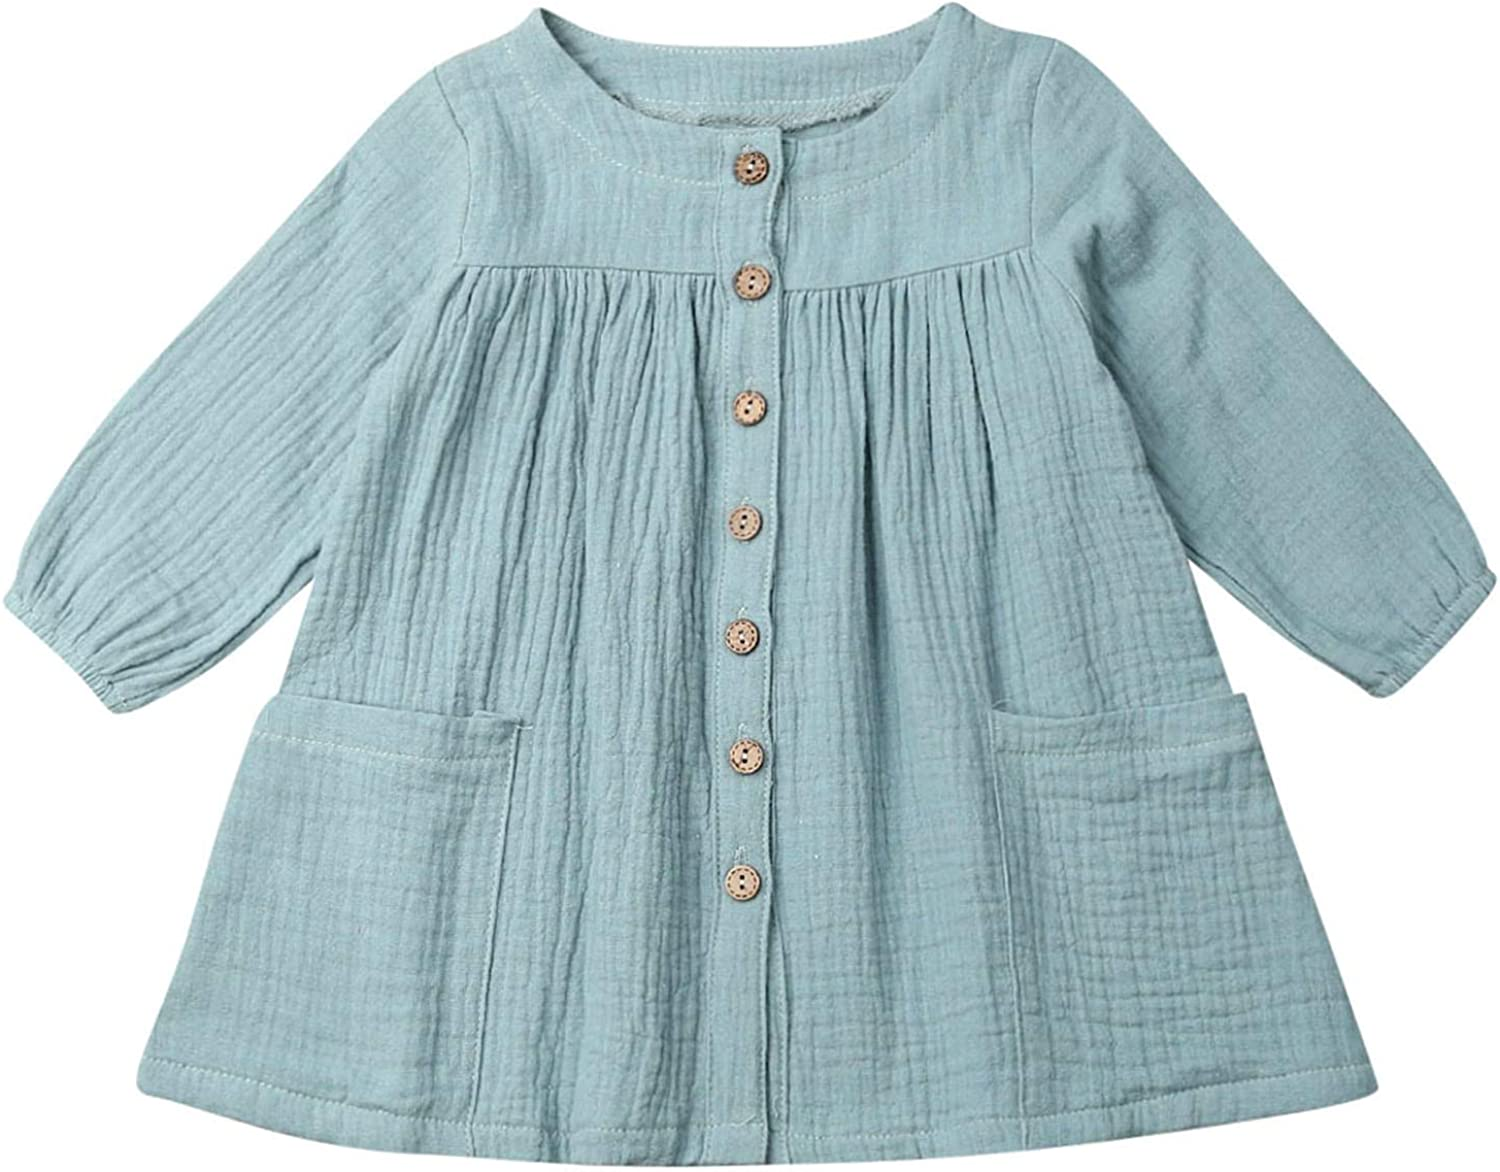 Toddler Baby Girl Fall Basic Plain Max 49% OFF Linen New Shipping Free Shipping Sleeve Cotton Long Bell